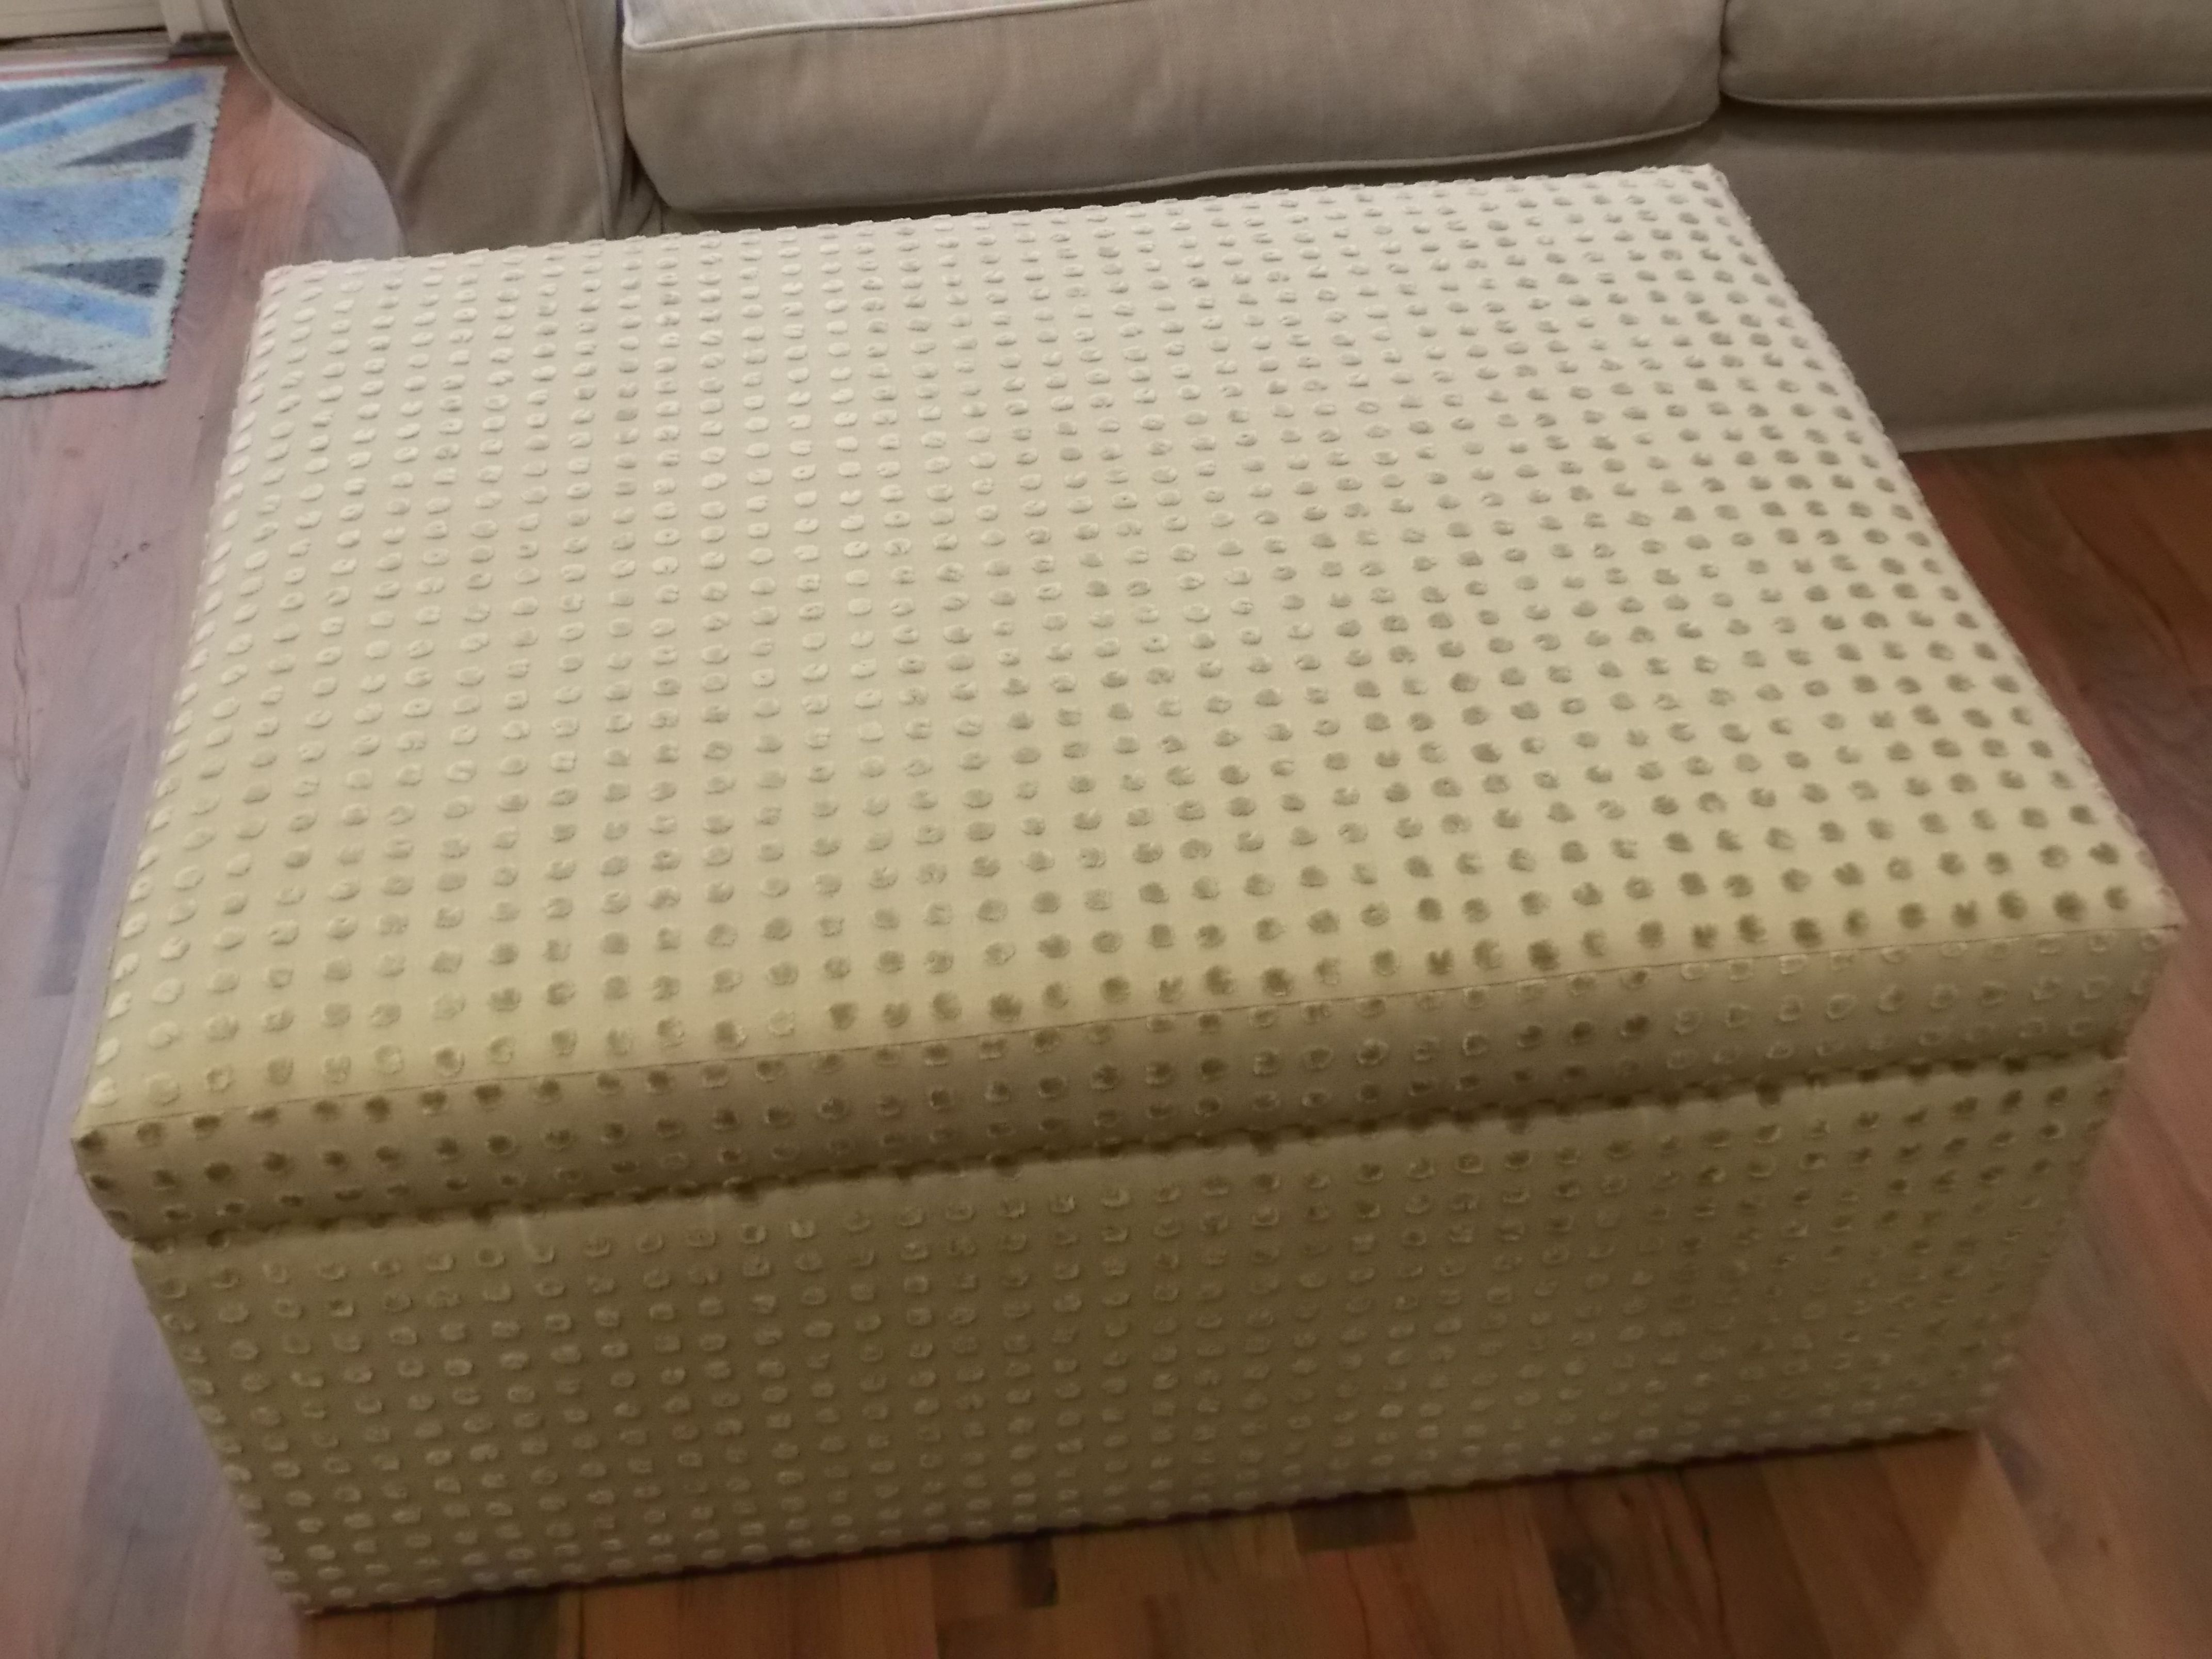 90 cm x 70 cm clutterbox / storage footstool which may